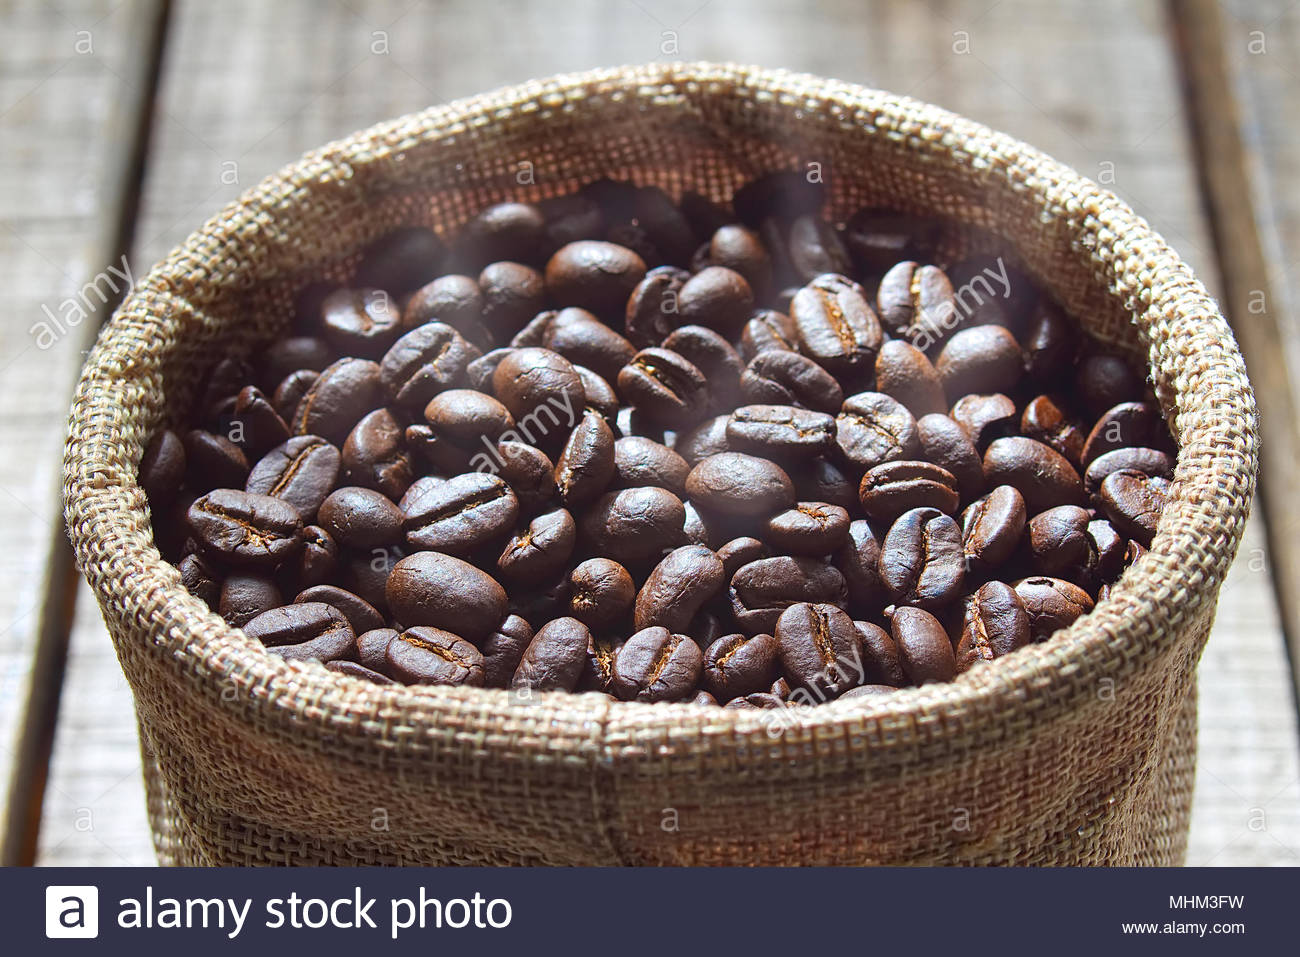 Close up fresh coffee beans keep in bag after blending on wood table. - Stock Image